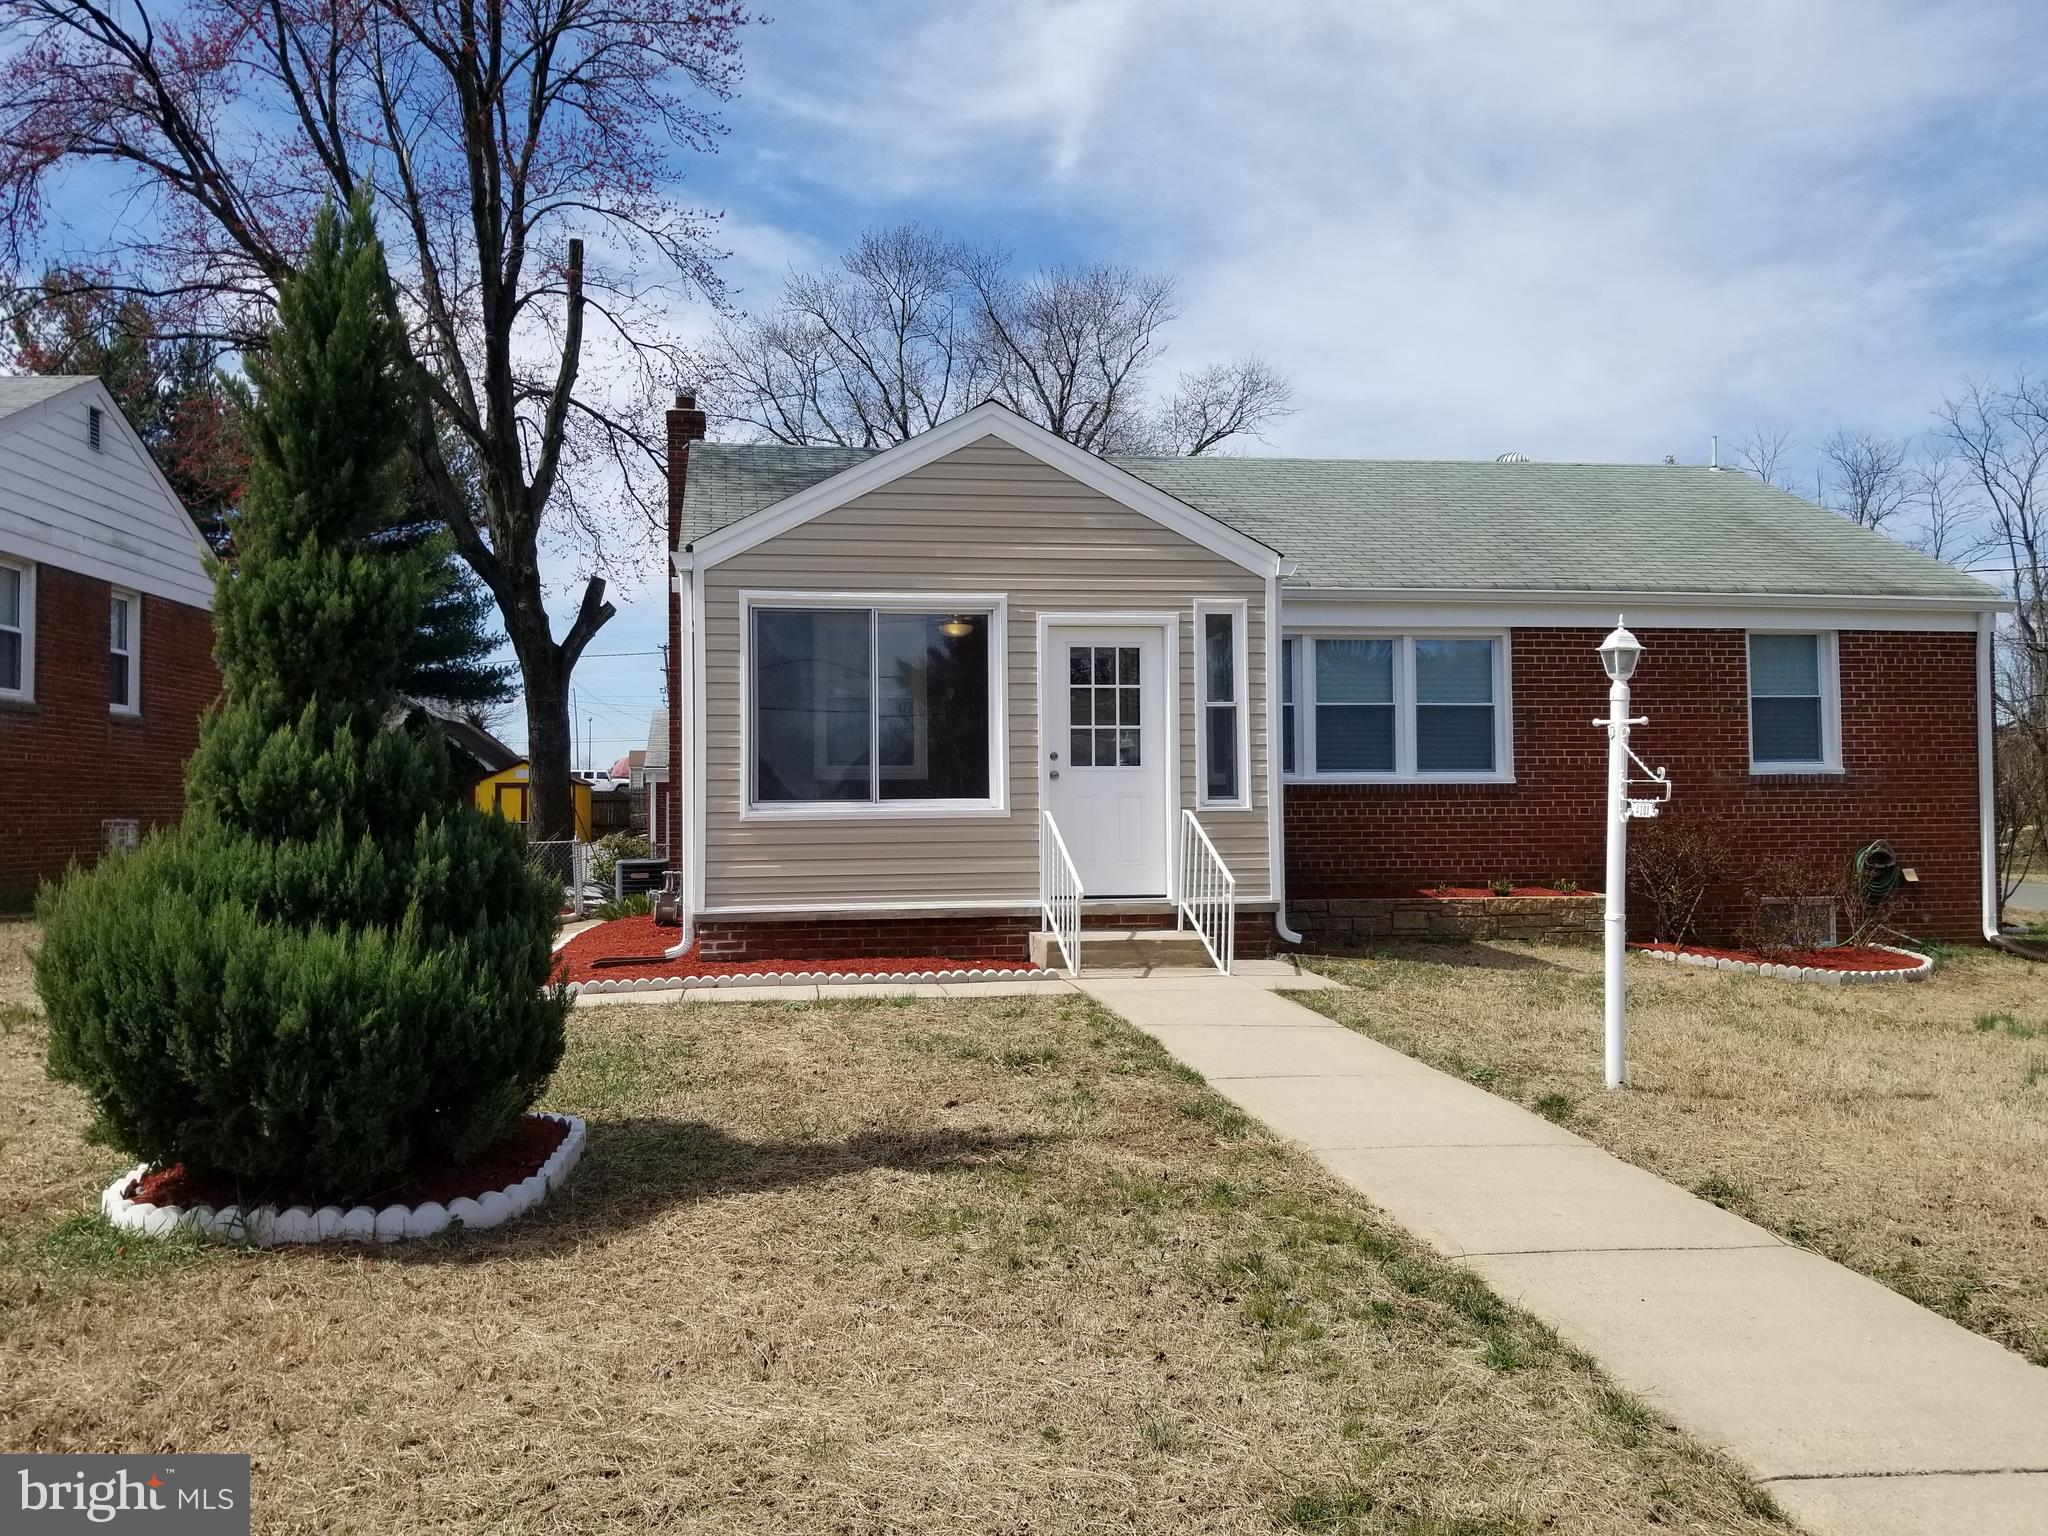 4301 TOWNSLEY AVENUE, TEMPLE HILLS, MD 20748